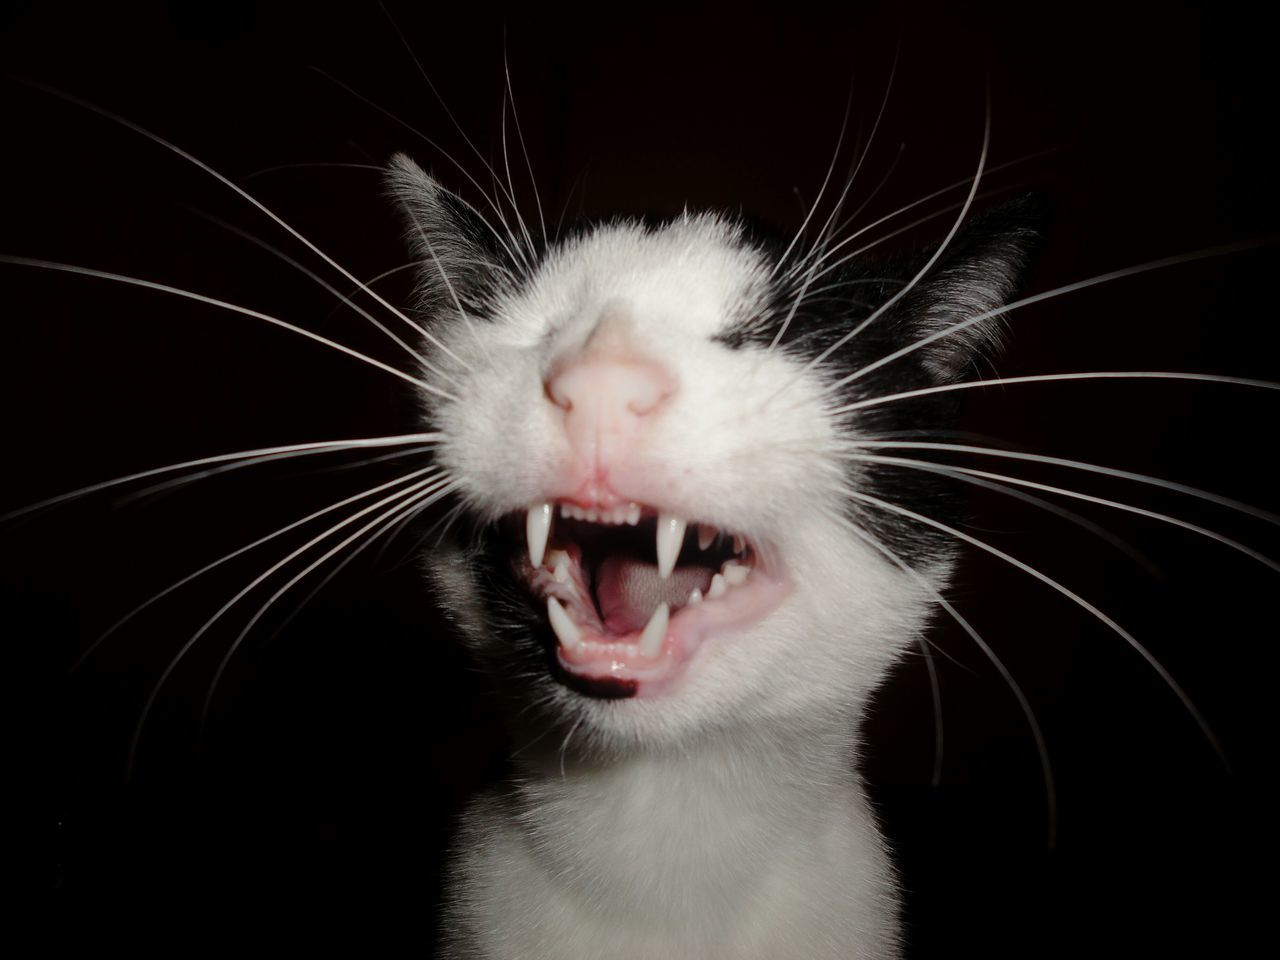 Mouth Open Black Background Pets Yawning Catlover Blackandwhitecat Close-up Fangs